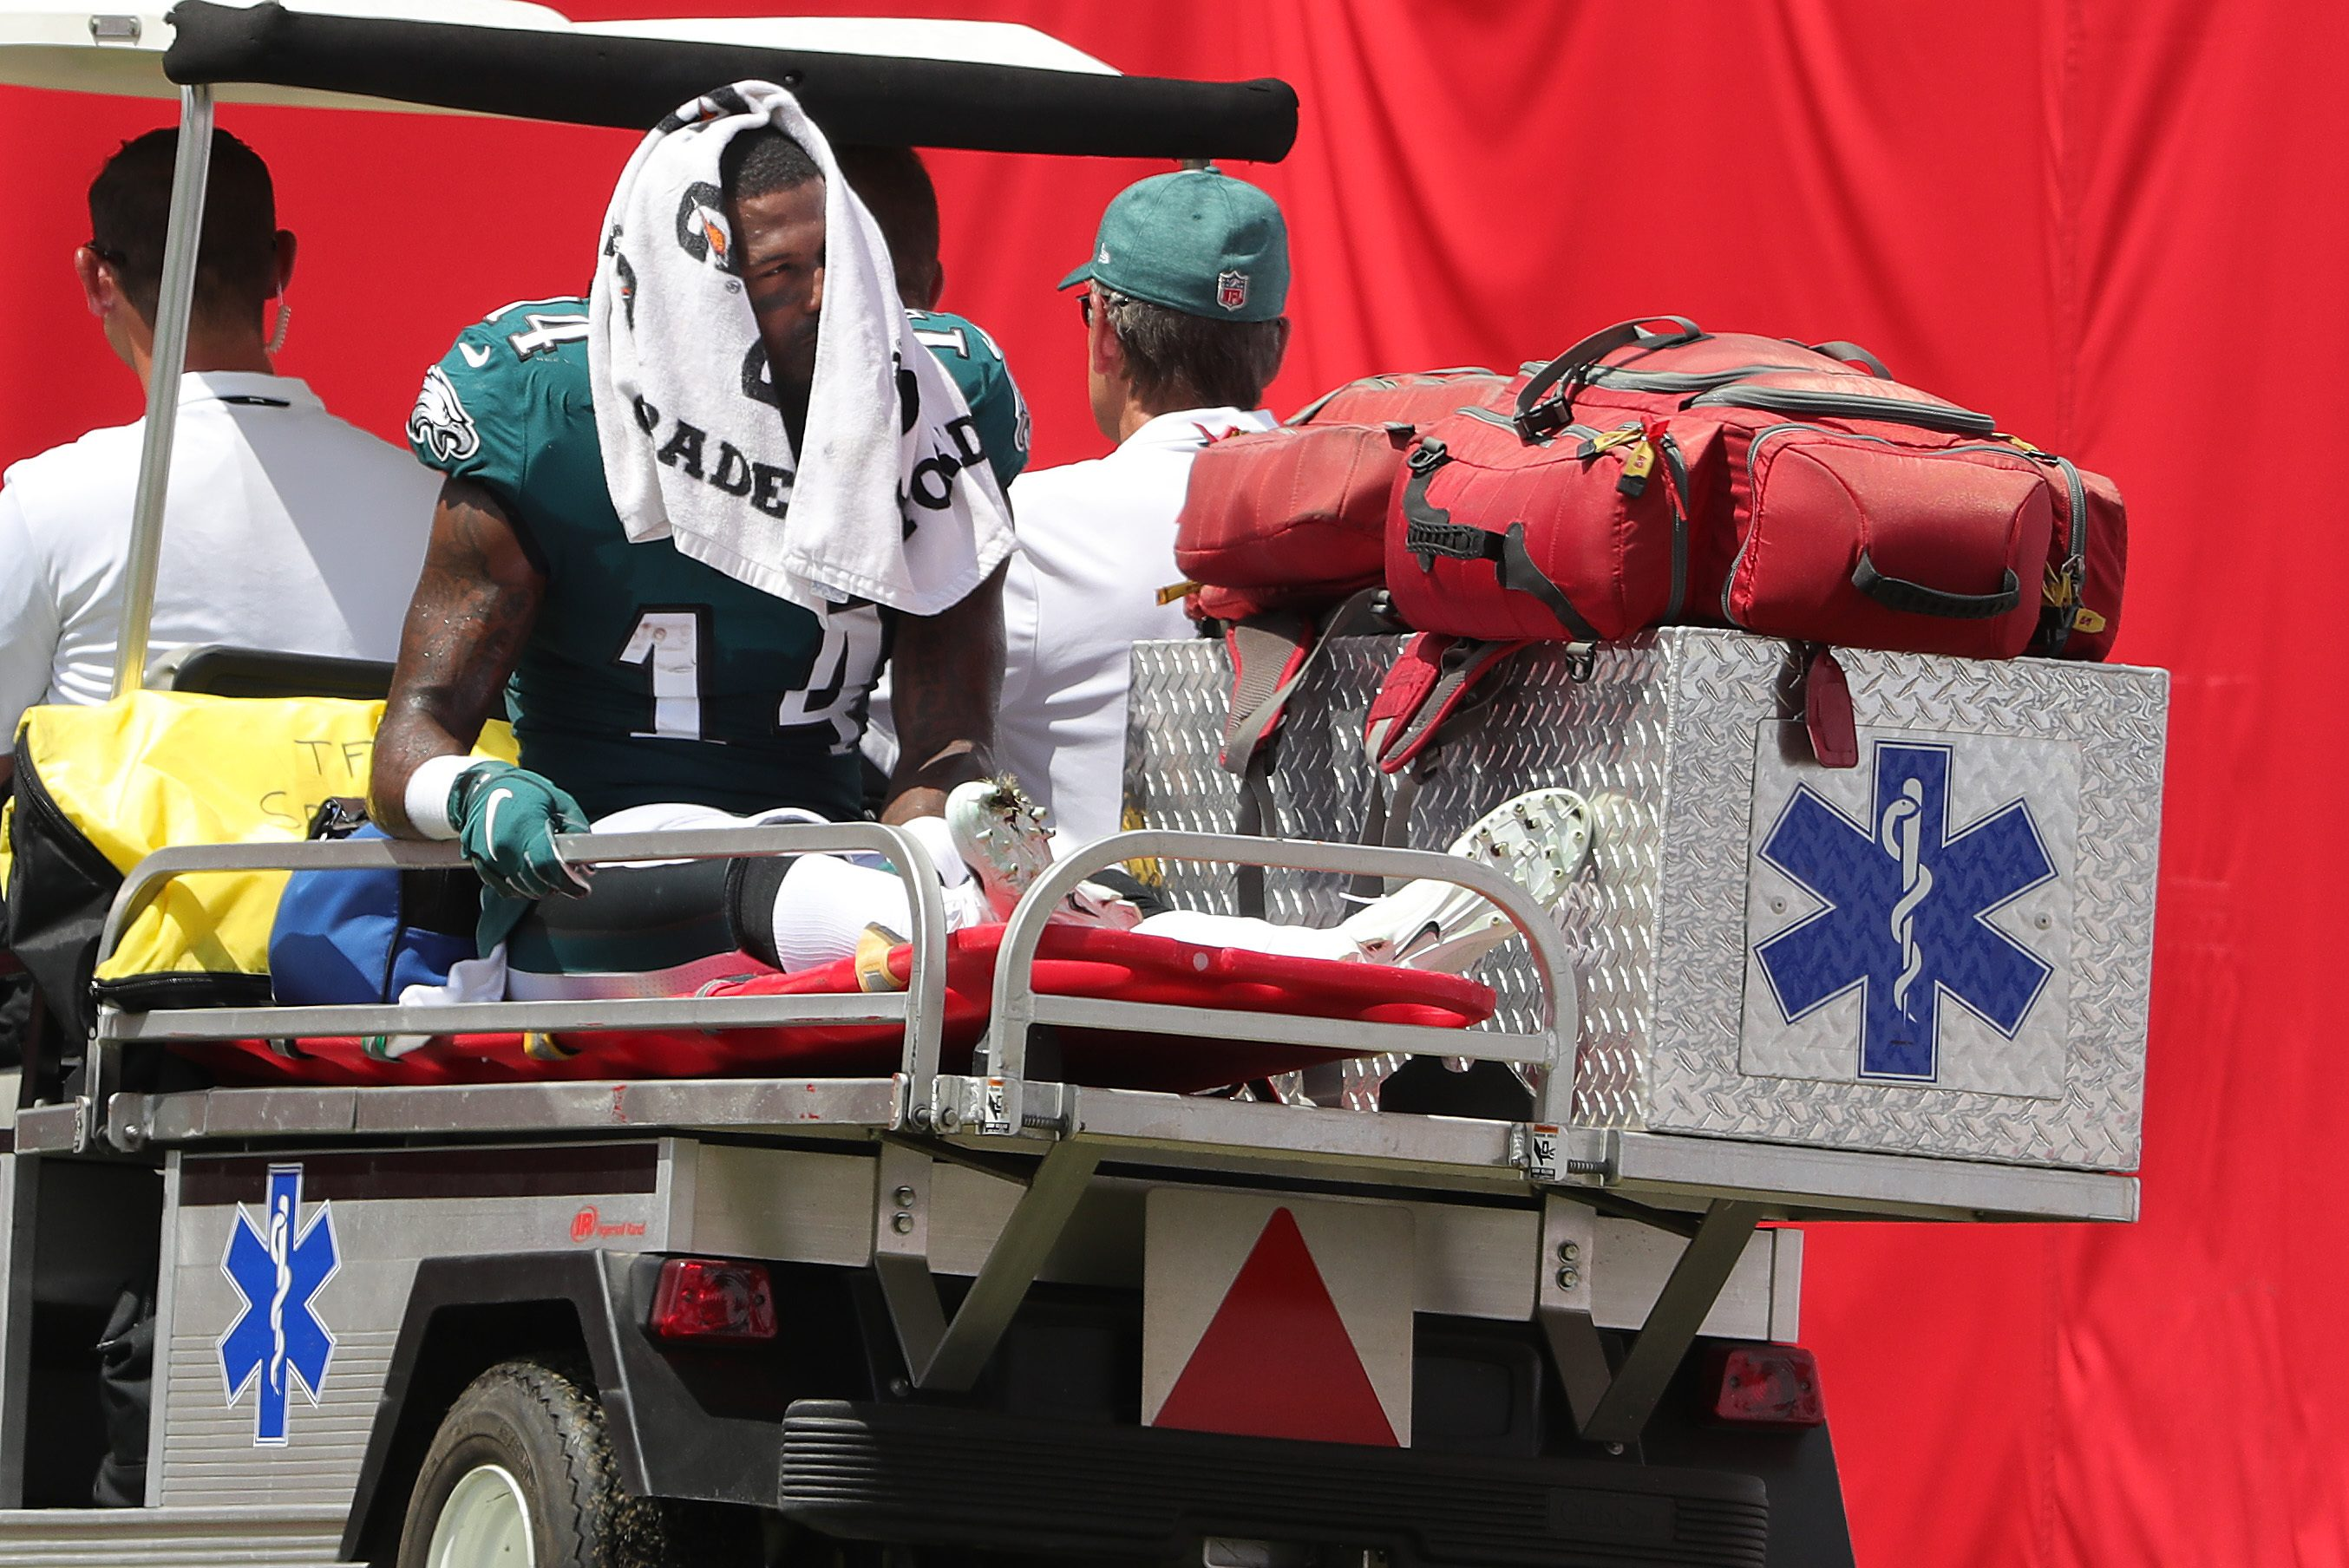 Mike Wallace leaves on a cart after injuring what appears to be a serious ankle injury.